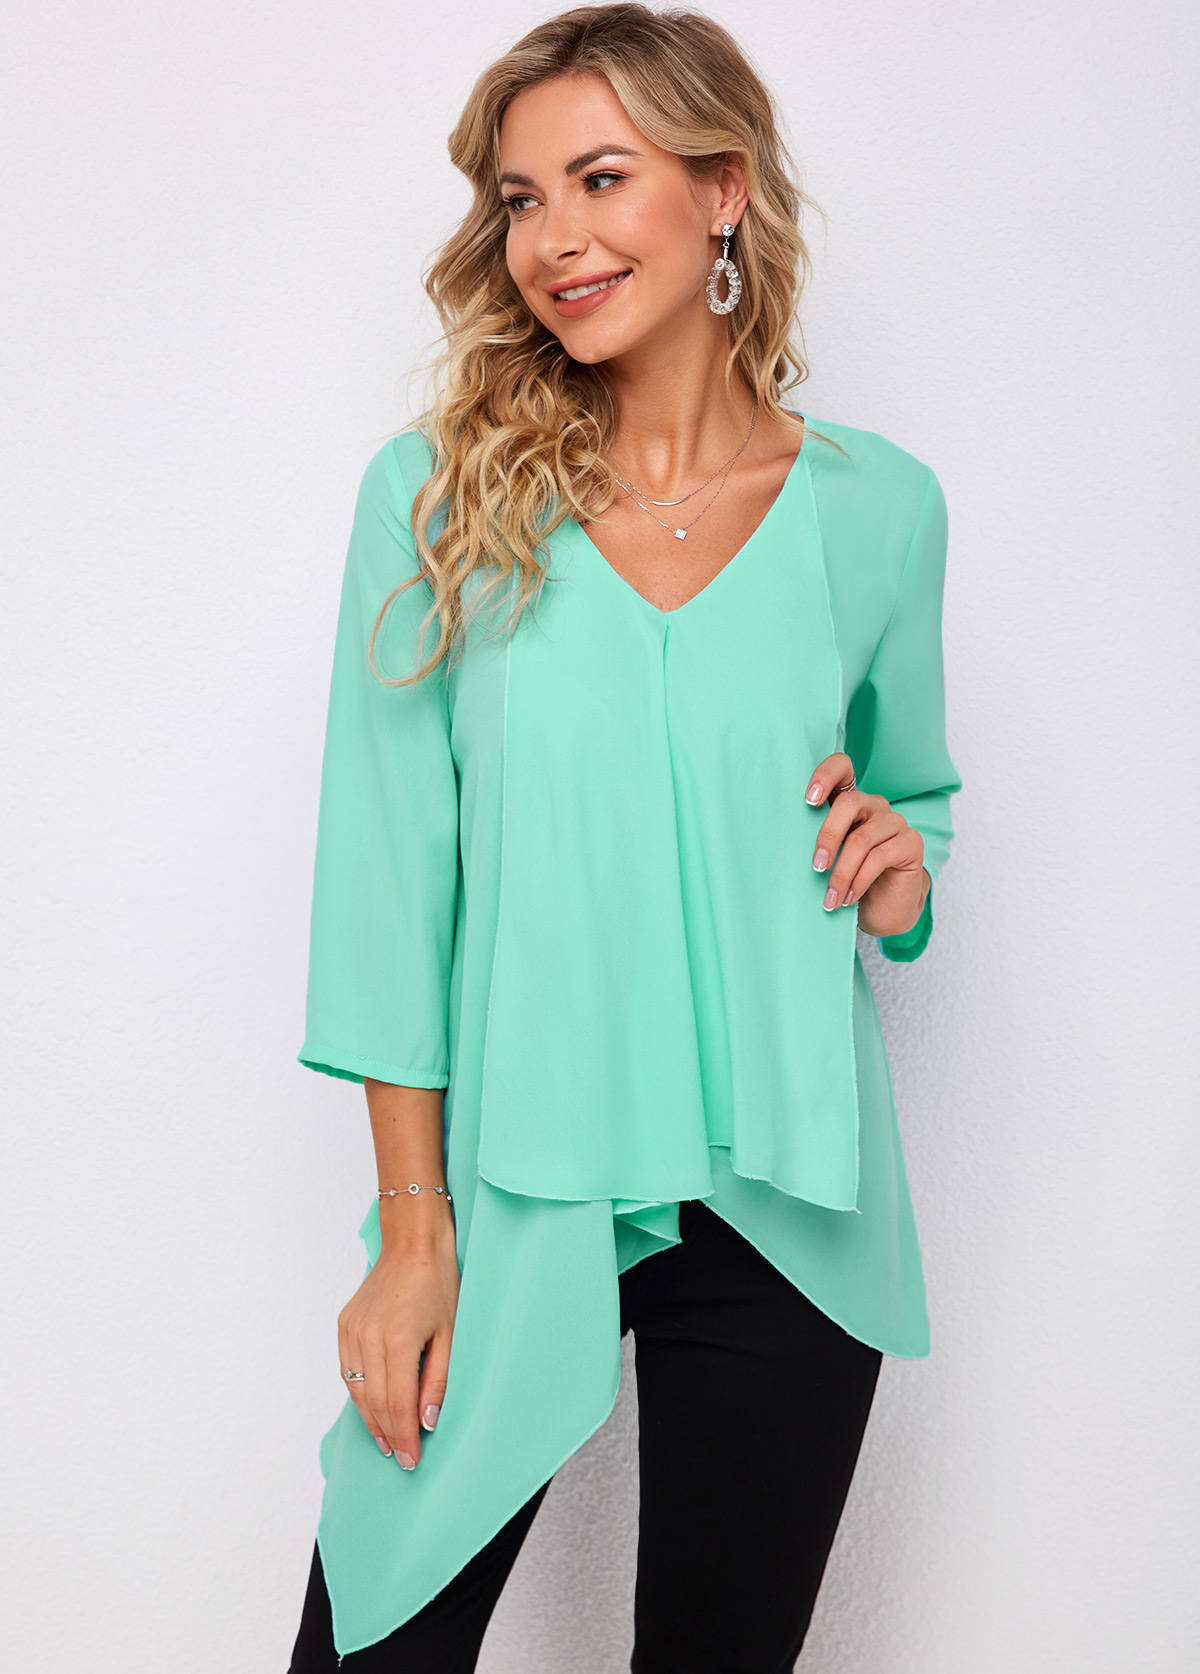 ROTITA Sleeveless Asymmetric Hem V Neck Blouse